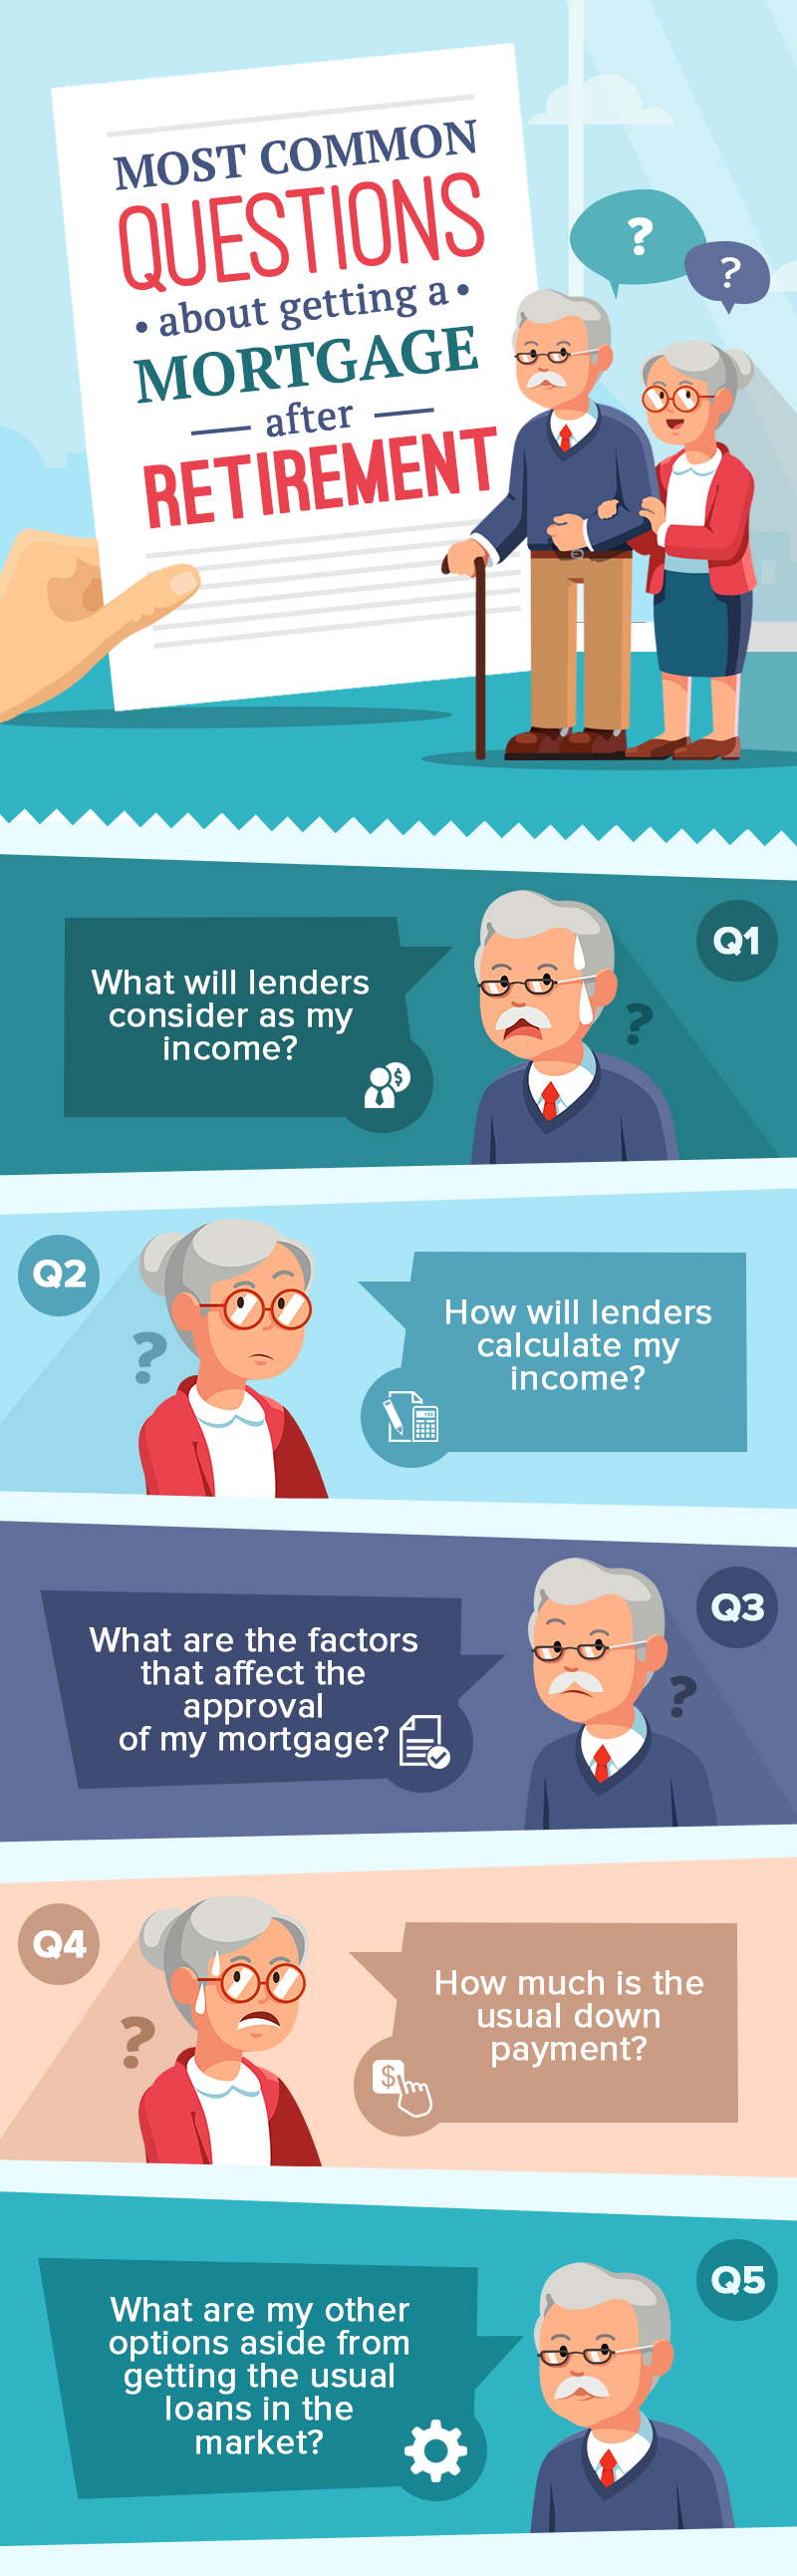 Most Common Questions About Getting A Mortgage After Retirement.jpg